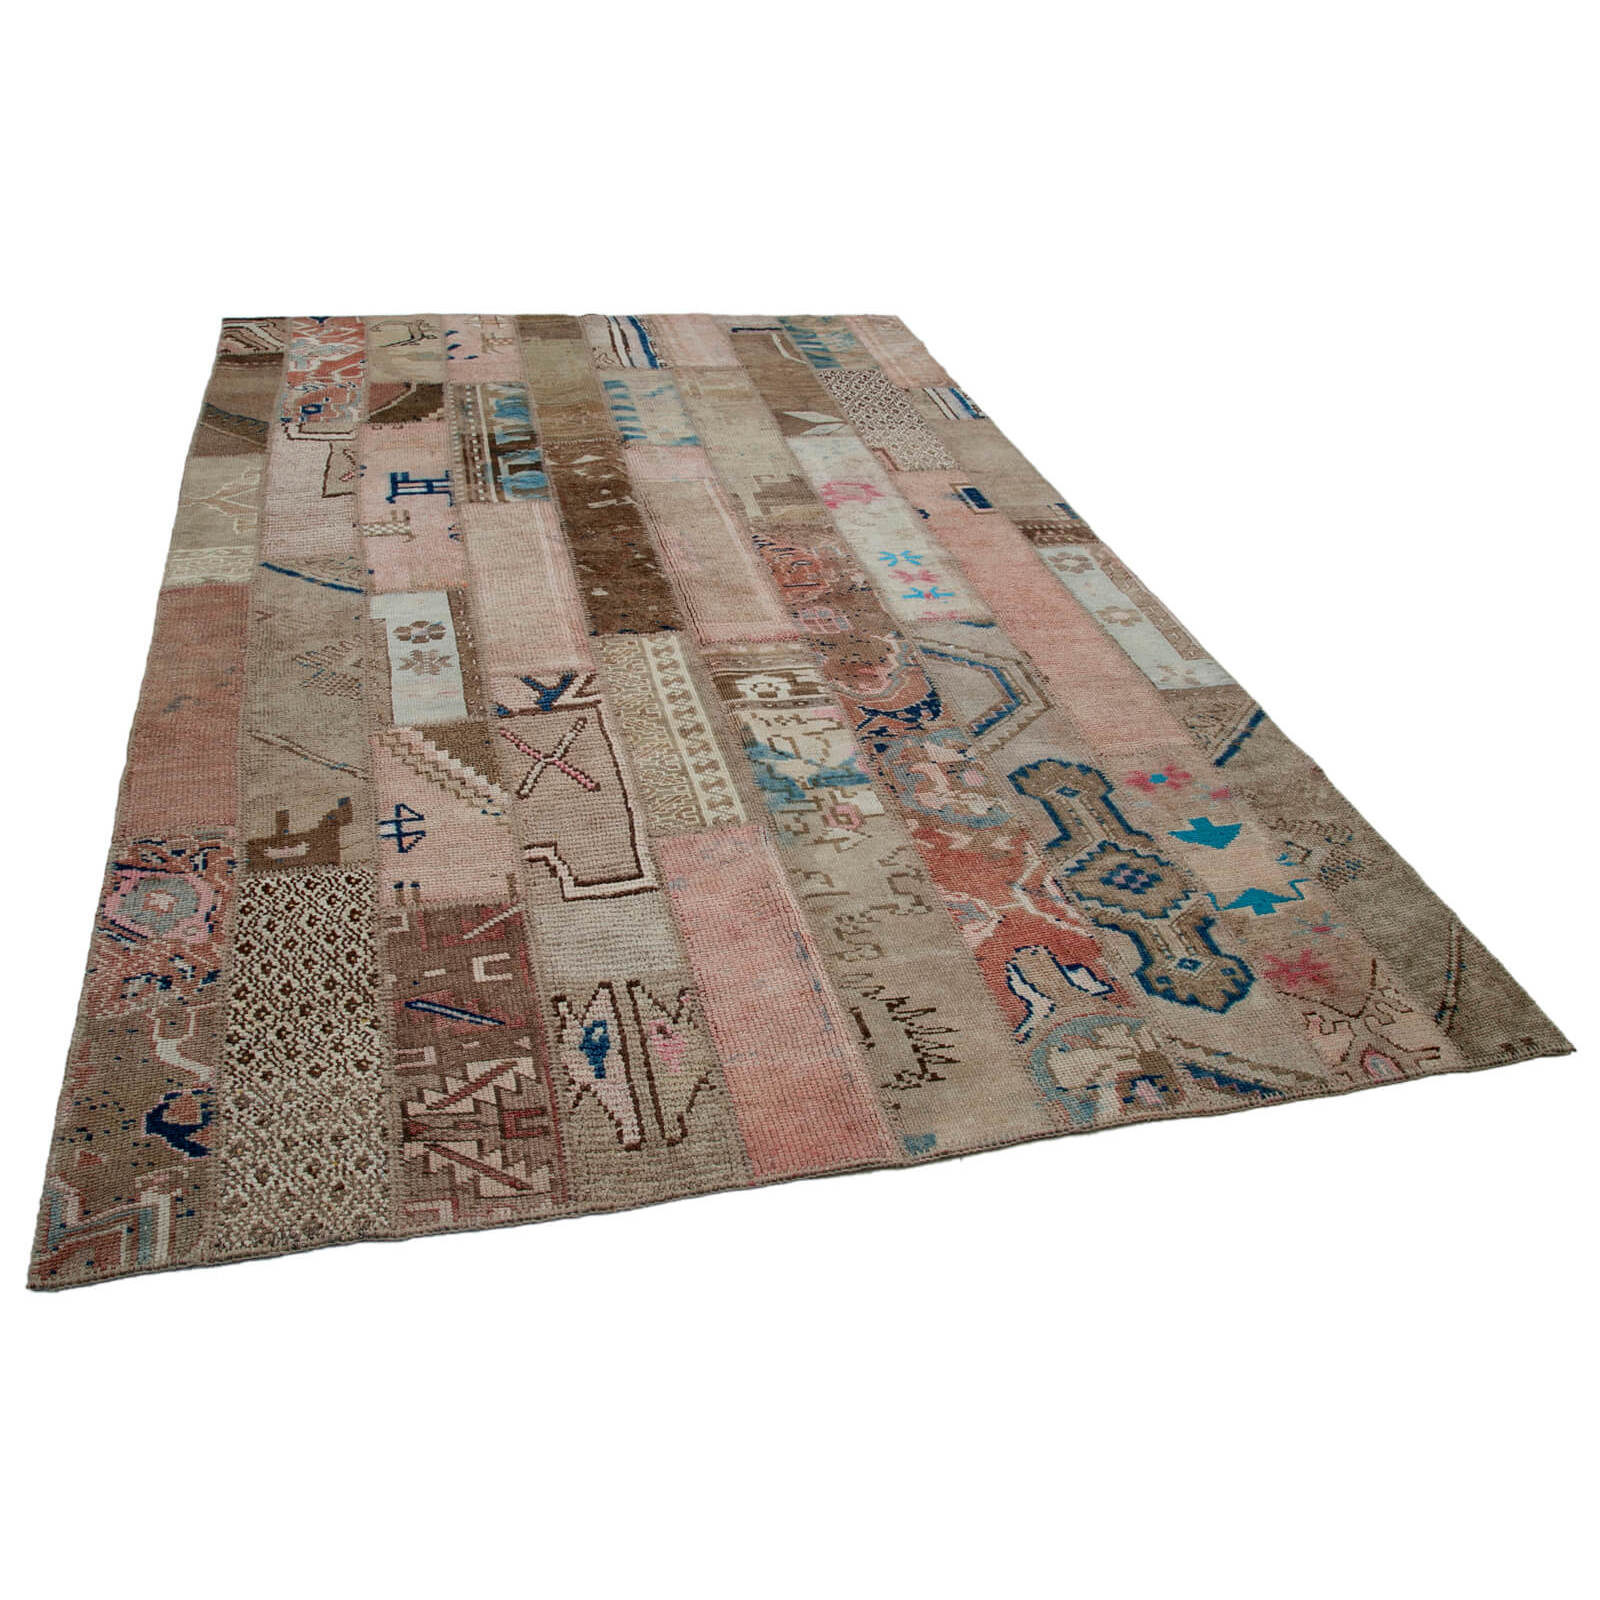 196x289 Cm Beige hecho a mano Patchwork Rug-6x9 Ft